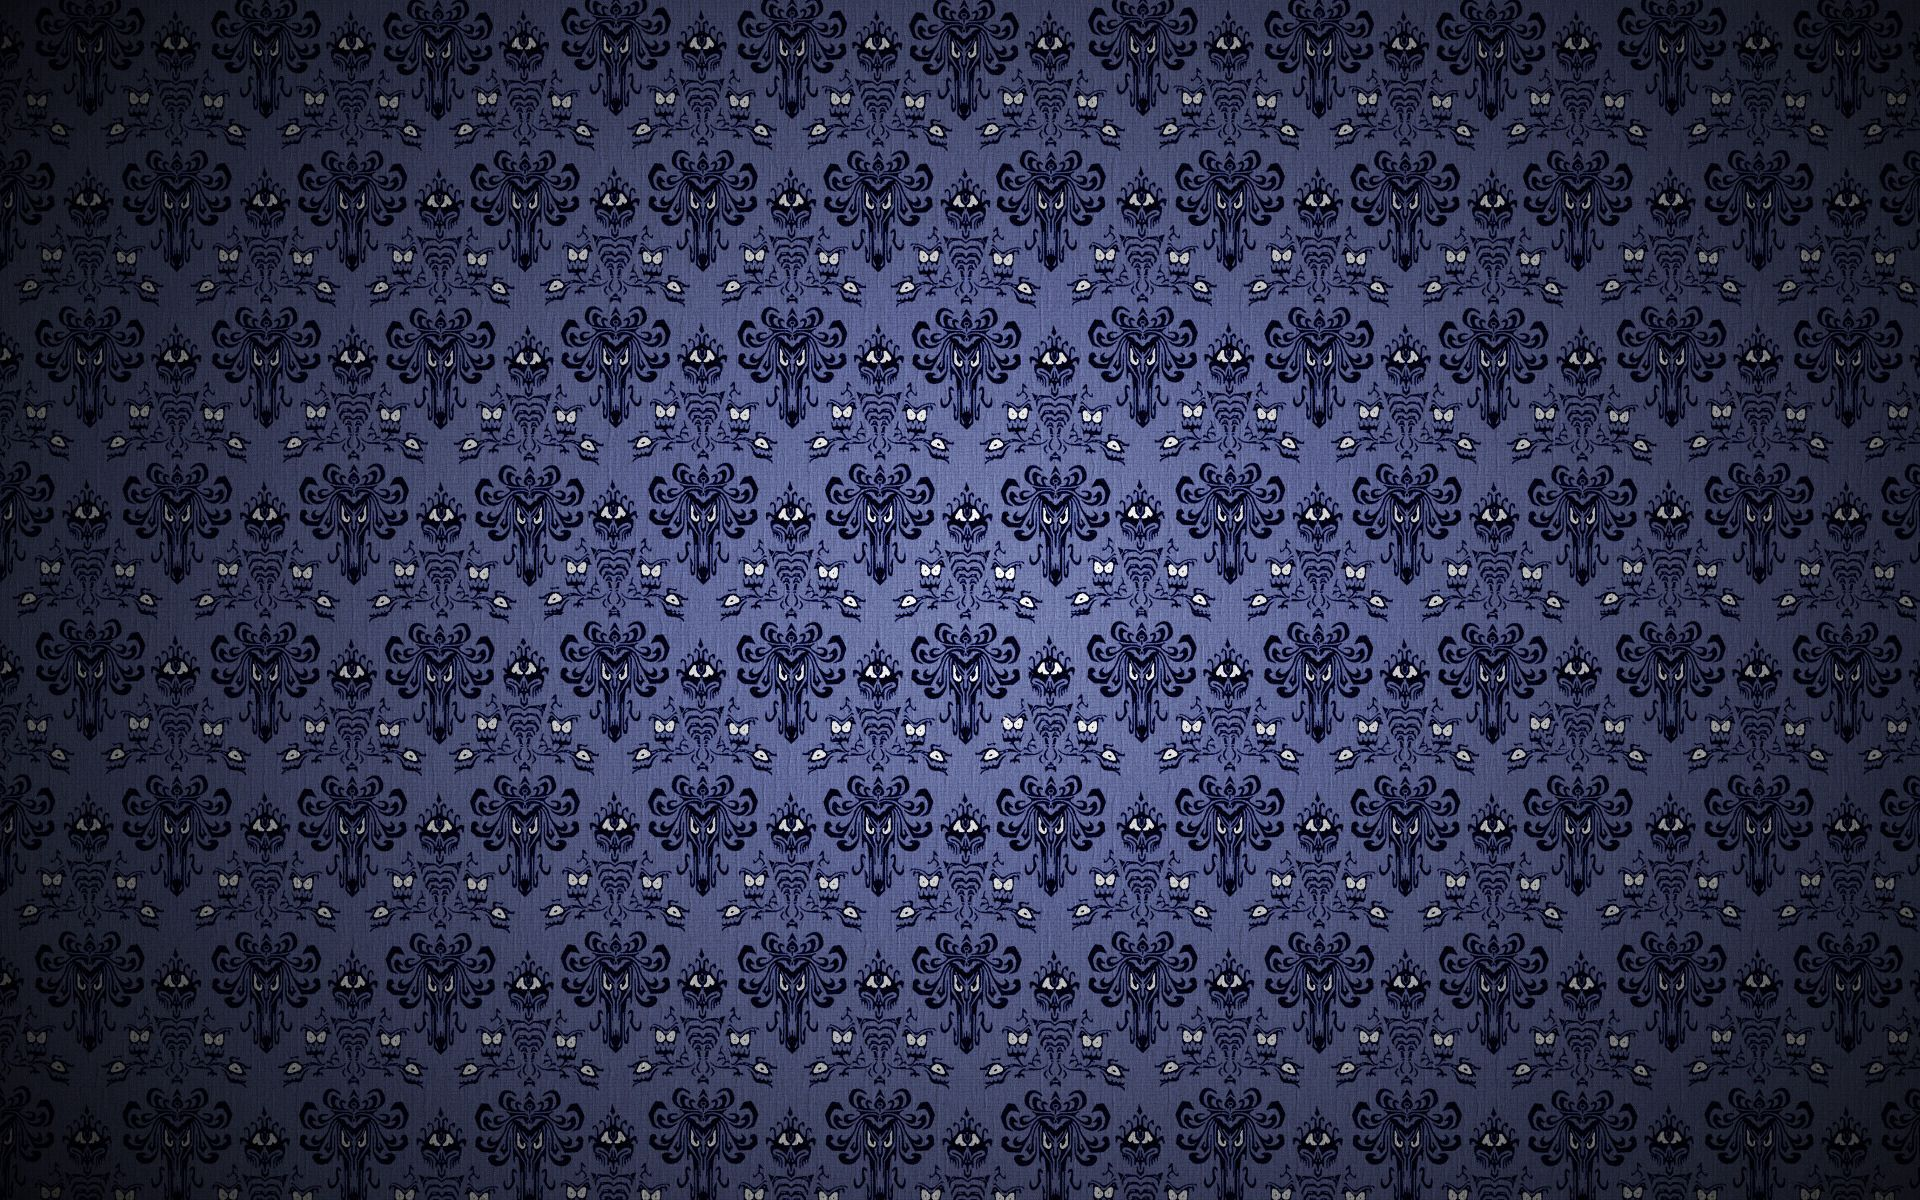 137792 download wallpaper Background, Patterns, Texture, Textures, Surface, Shadow screensavers and pictures for free